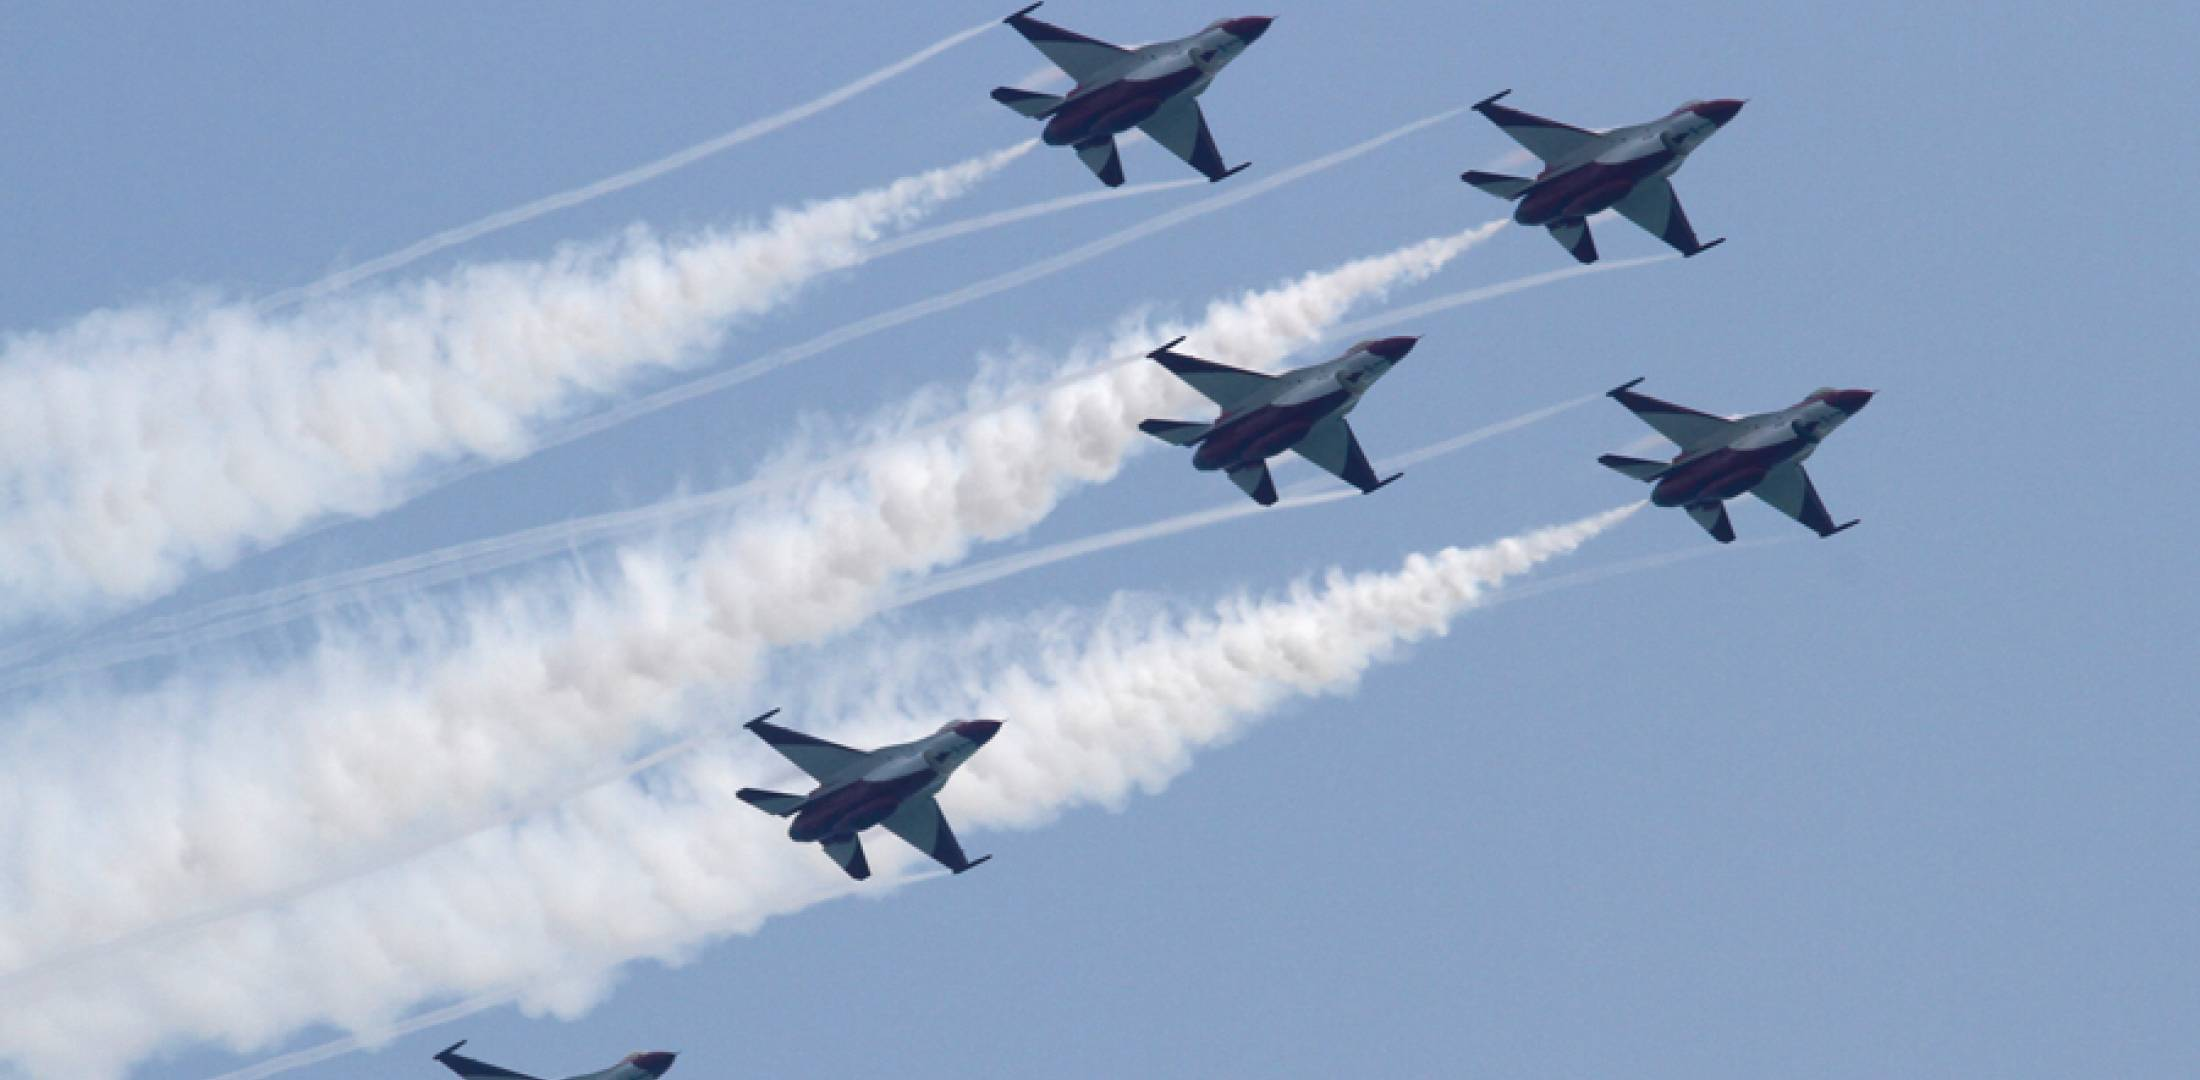 RSAF's Black Knights soar at 2014 Singapore Airshow